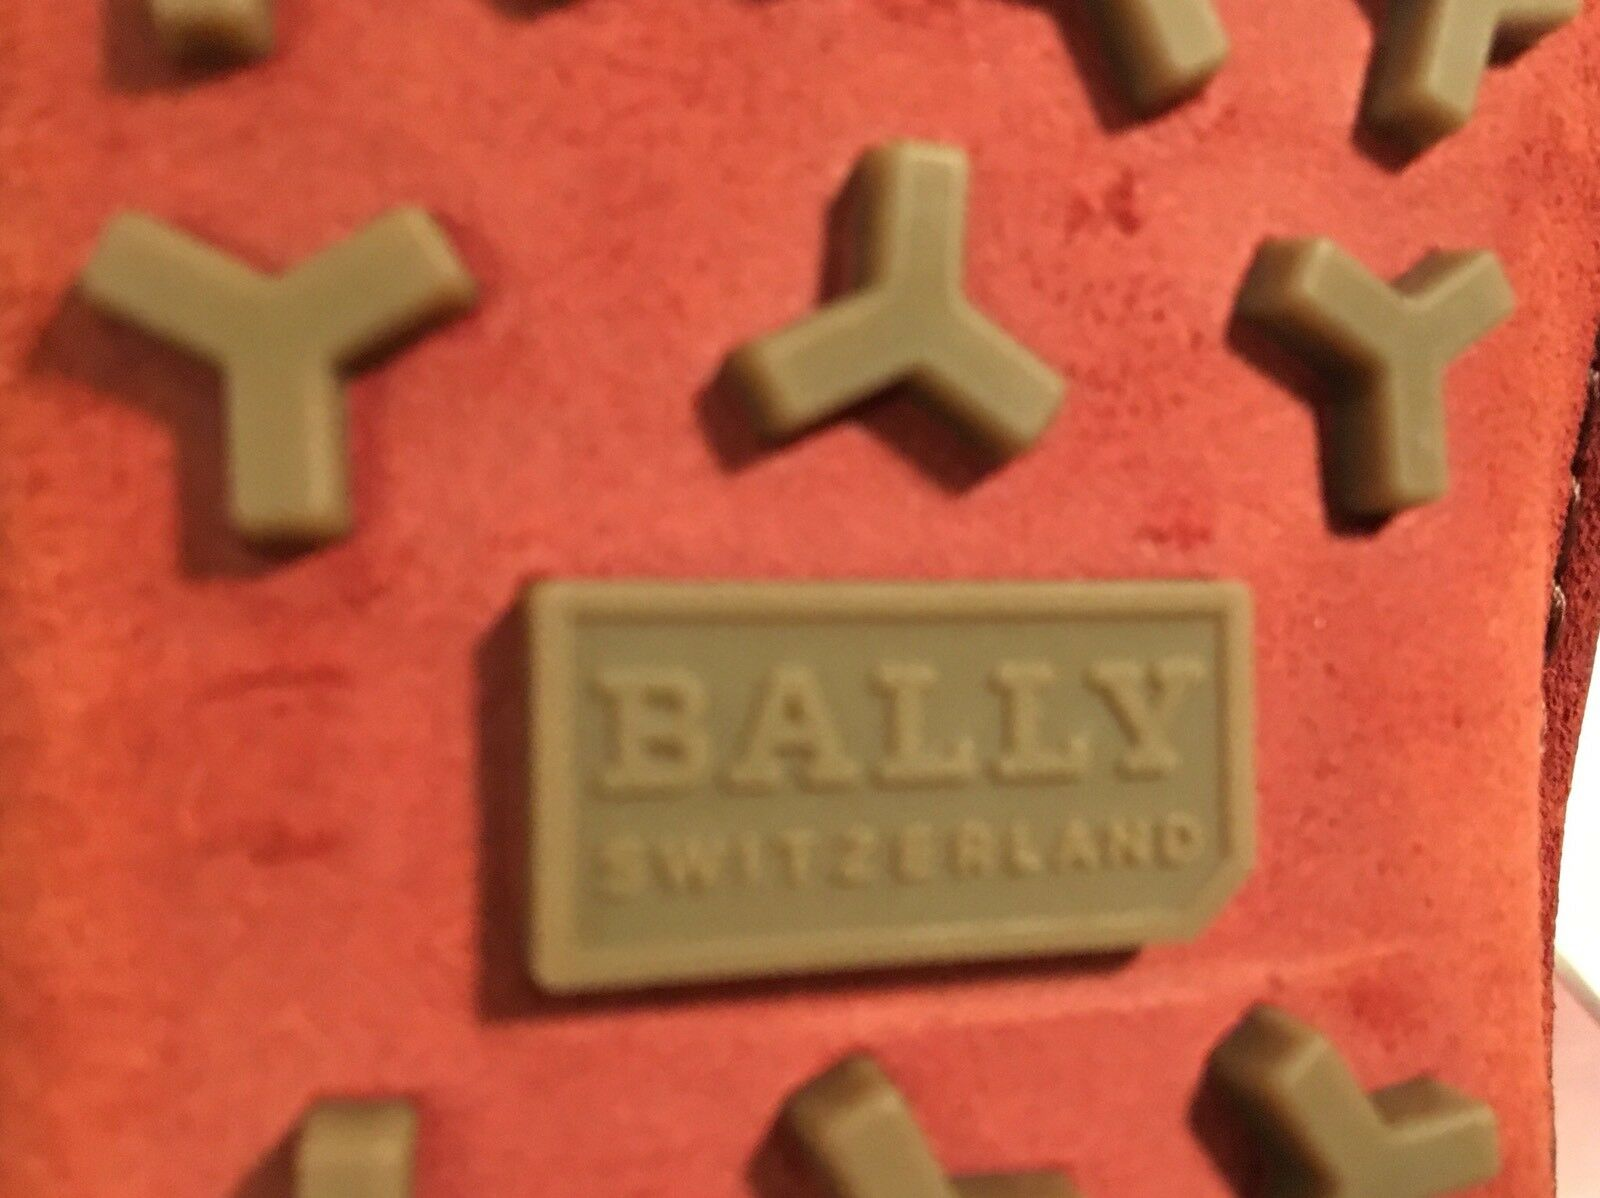 550  Bally Weilon Pumpkin Suede Driver Size US Italy 11 Made in Italy US 6b6b9b